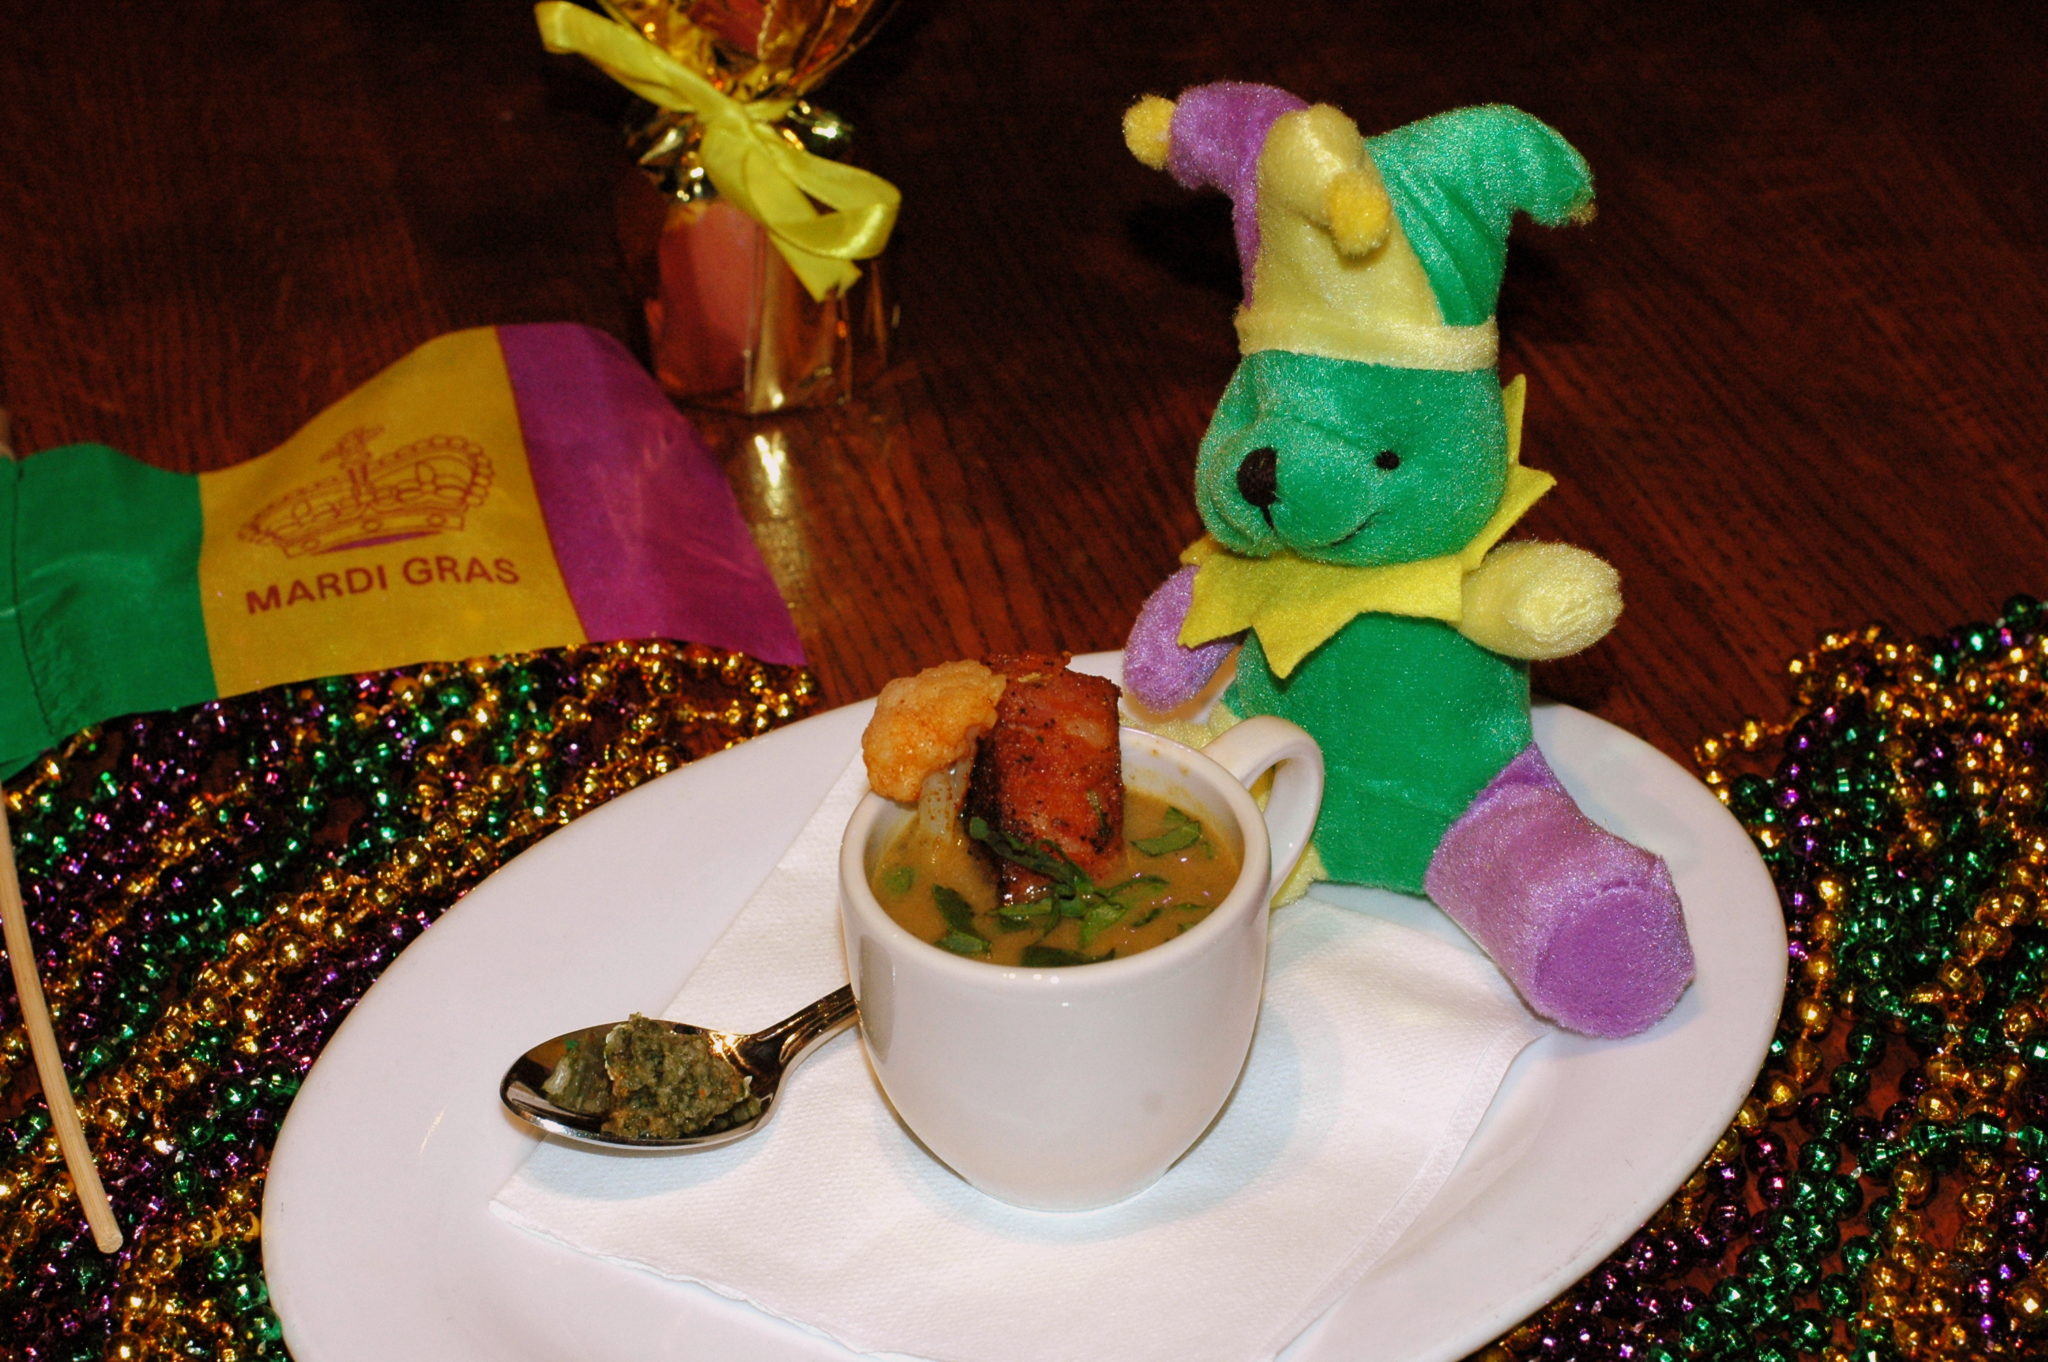 Bluegrass chicken and sausage gumbo mardi gras